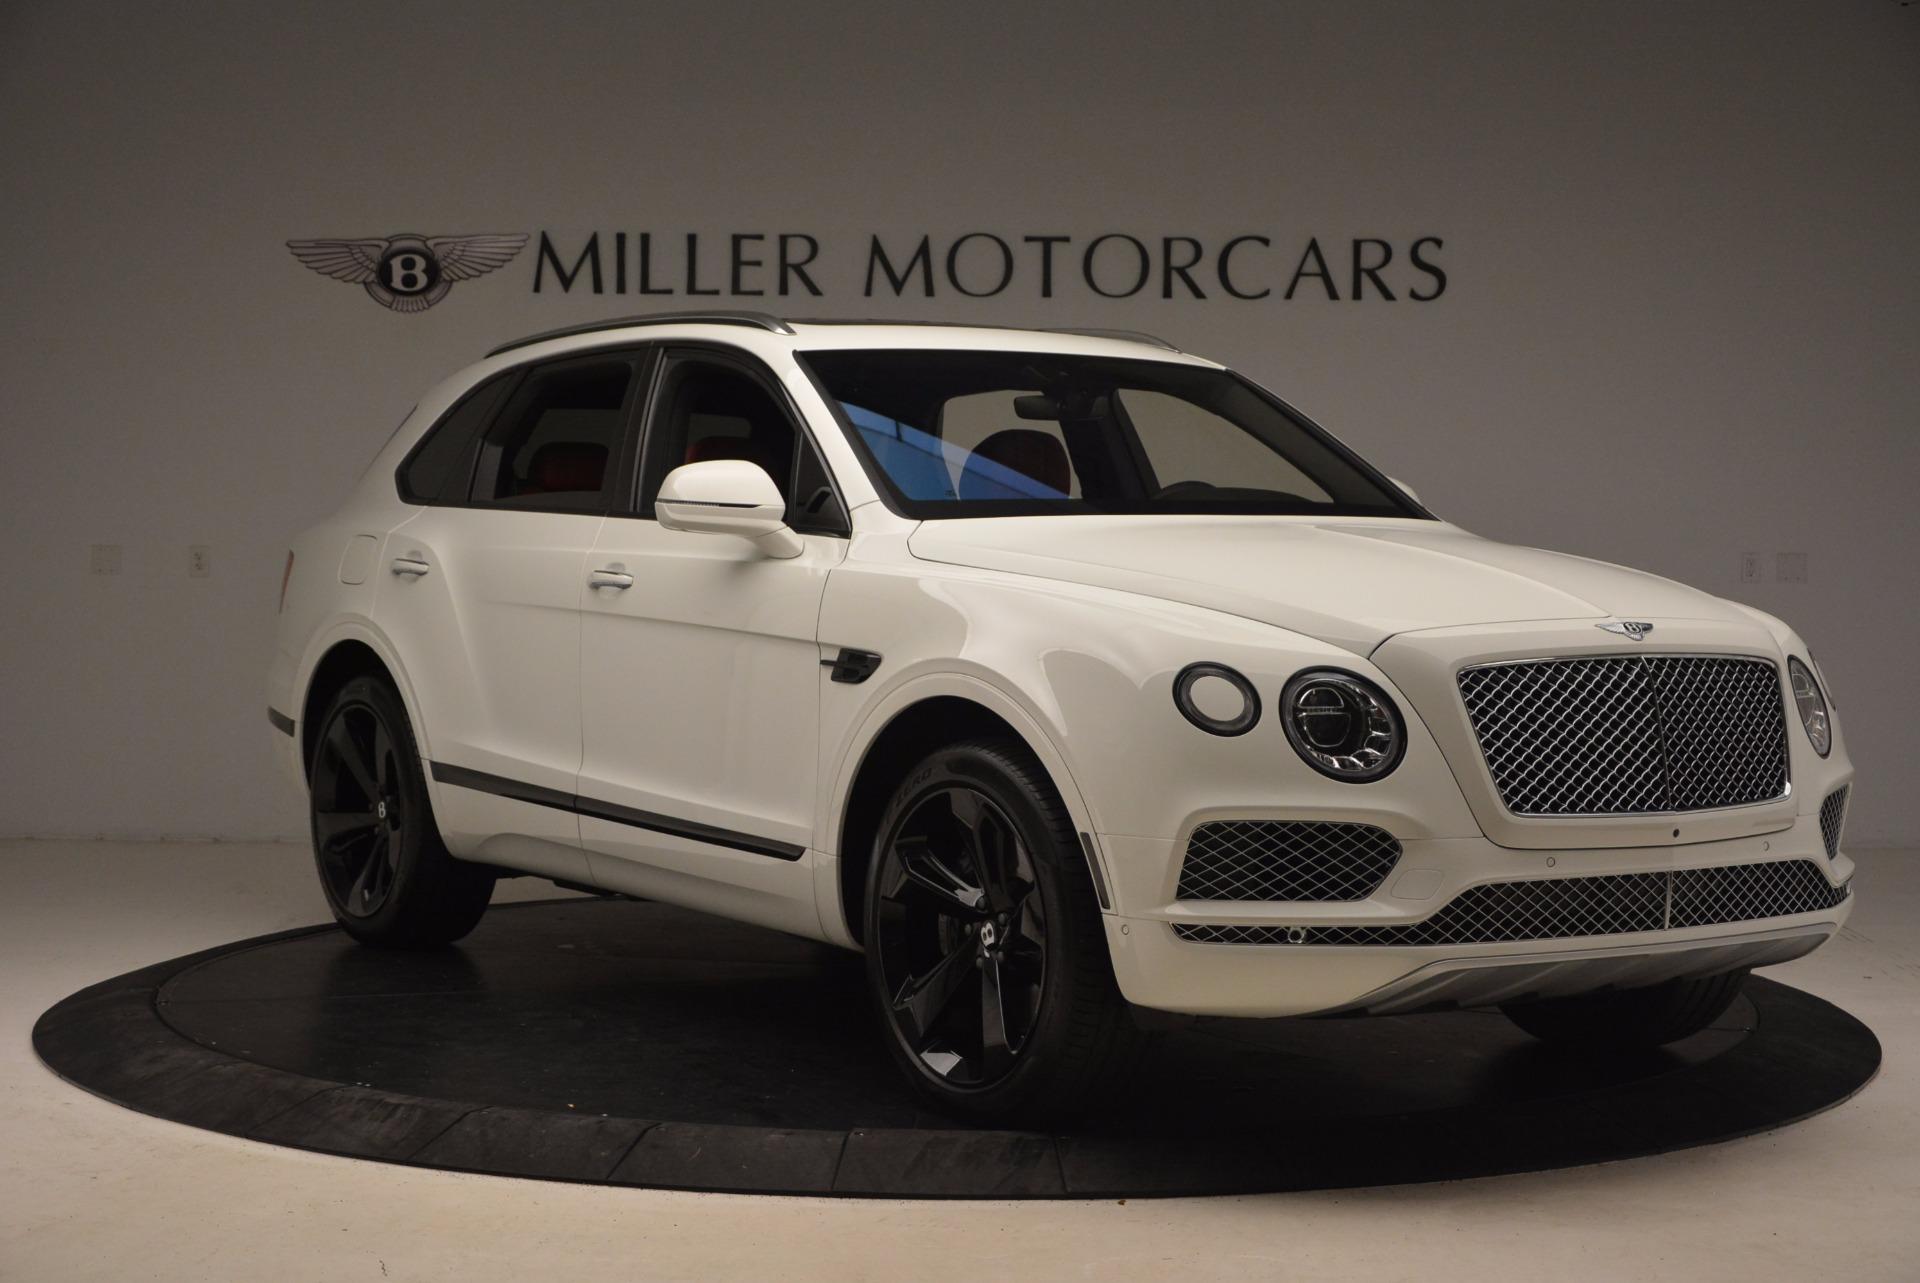 mobile s off transfer bentley and you can for a loan lease gtc vehicle proposal is this purchase with franklin details nj not in continental lakes sale